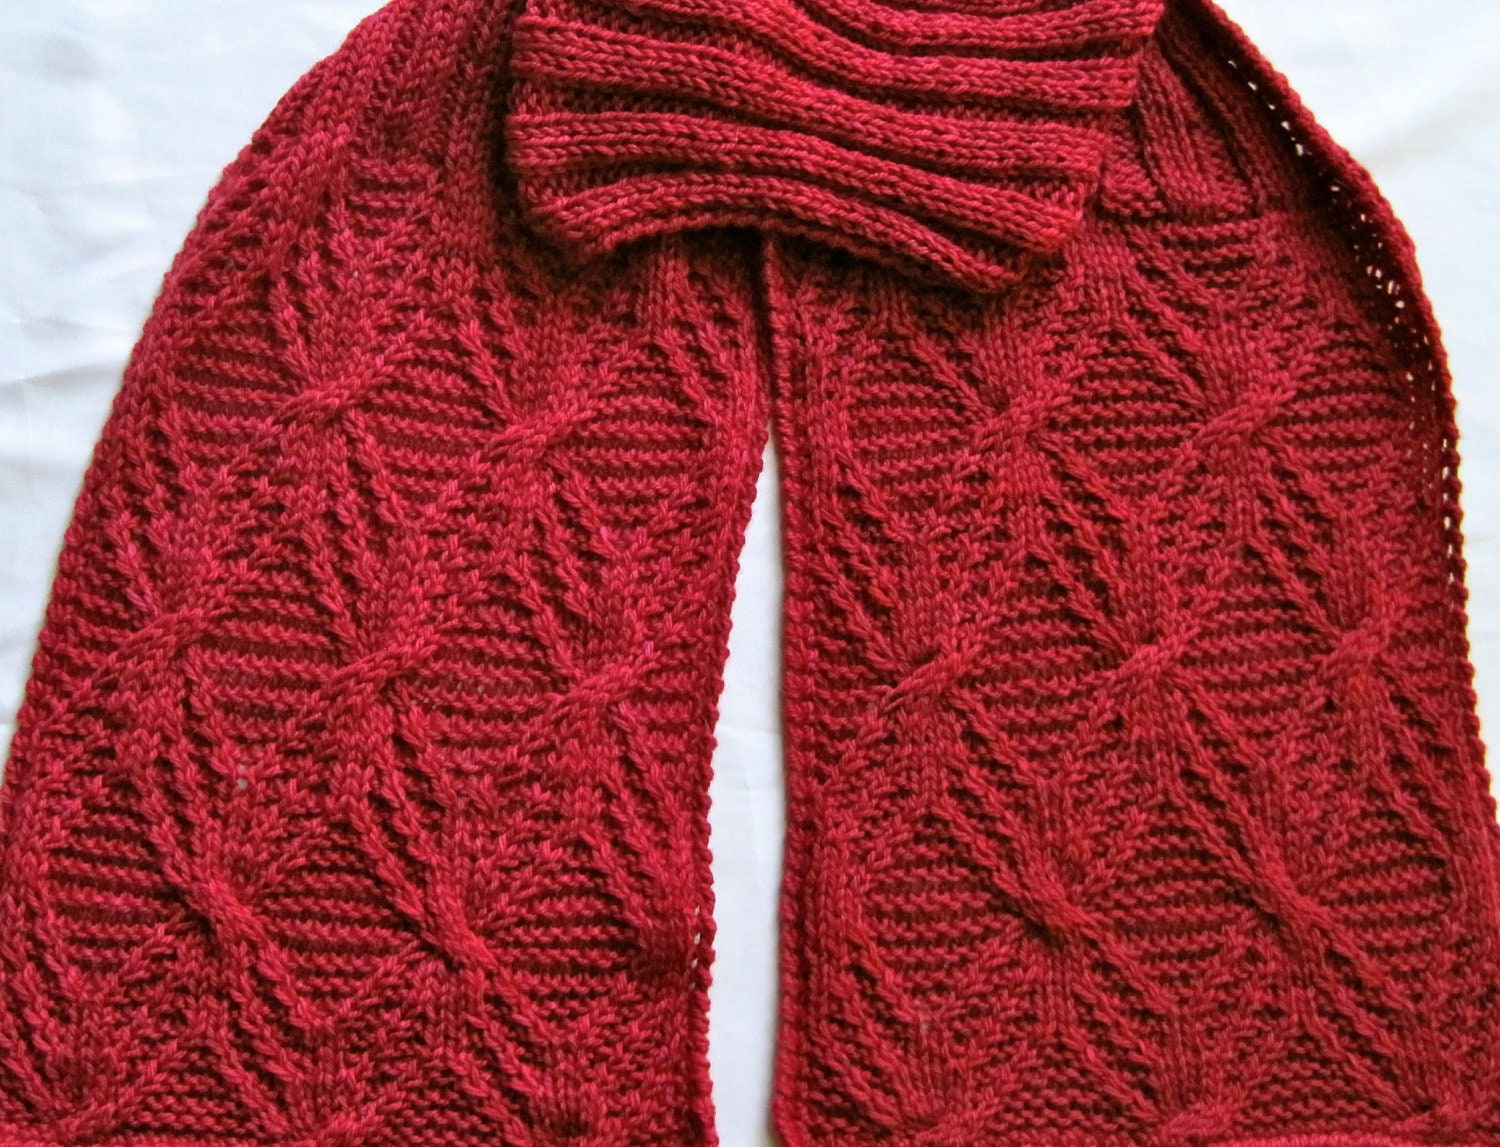 Knitting Pattern Twisted Scarf : Knit Scarf Pattern: Twisted Branches Turtleneck Scarf